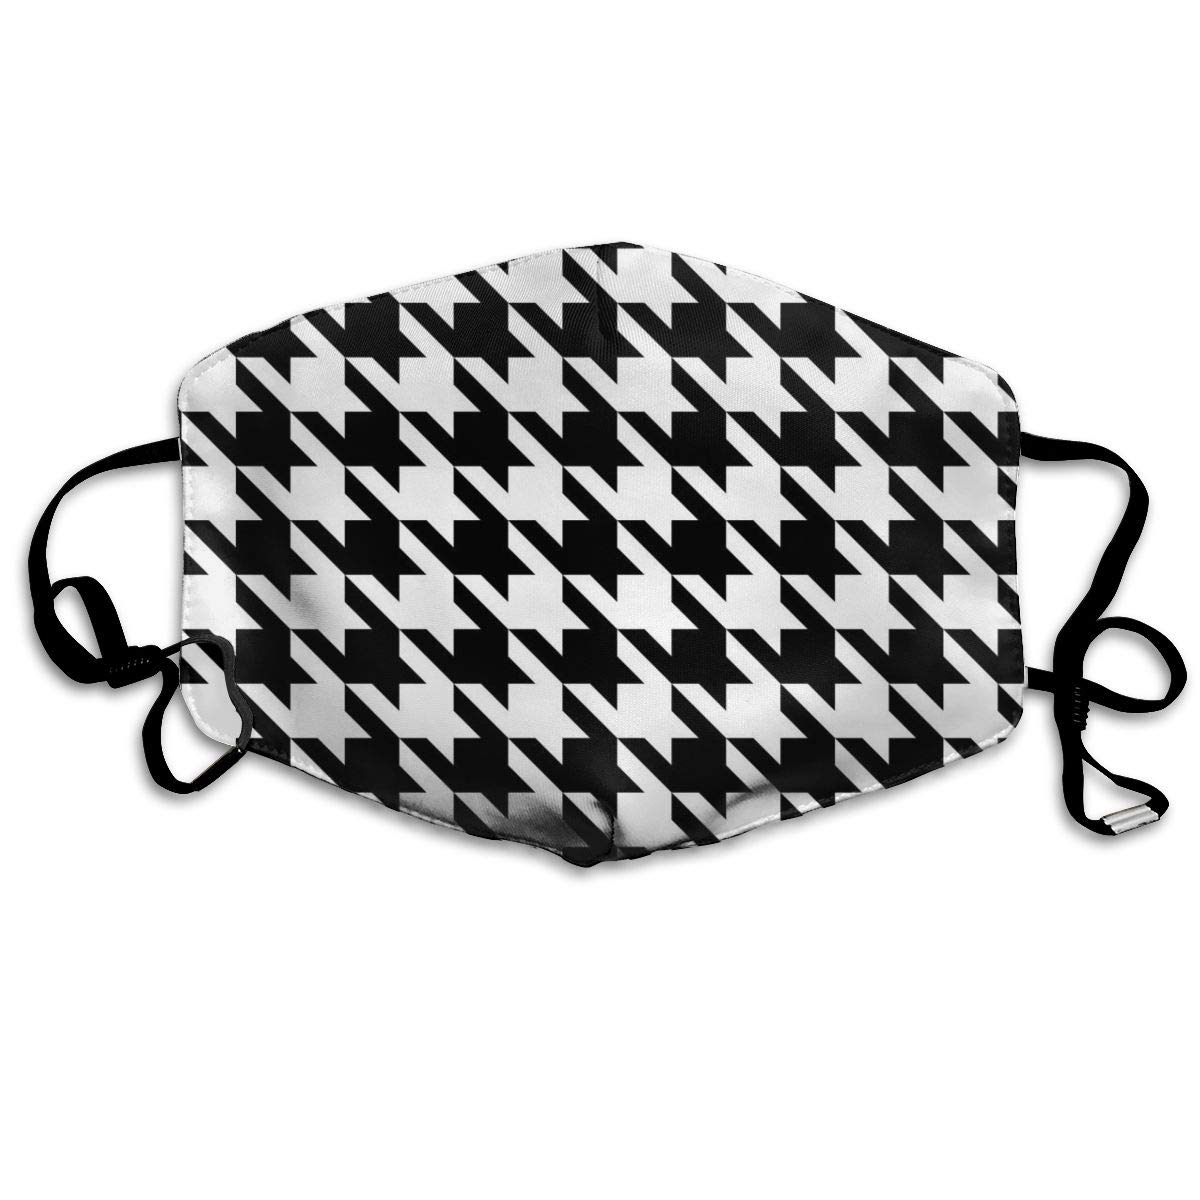 Mouth Mask Black And White Houndstooth Fashion Earloop Face Mask For Kids Teens Men Women Winter Summer